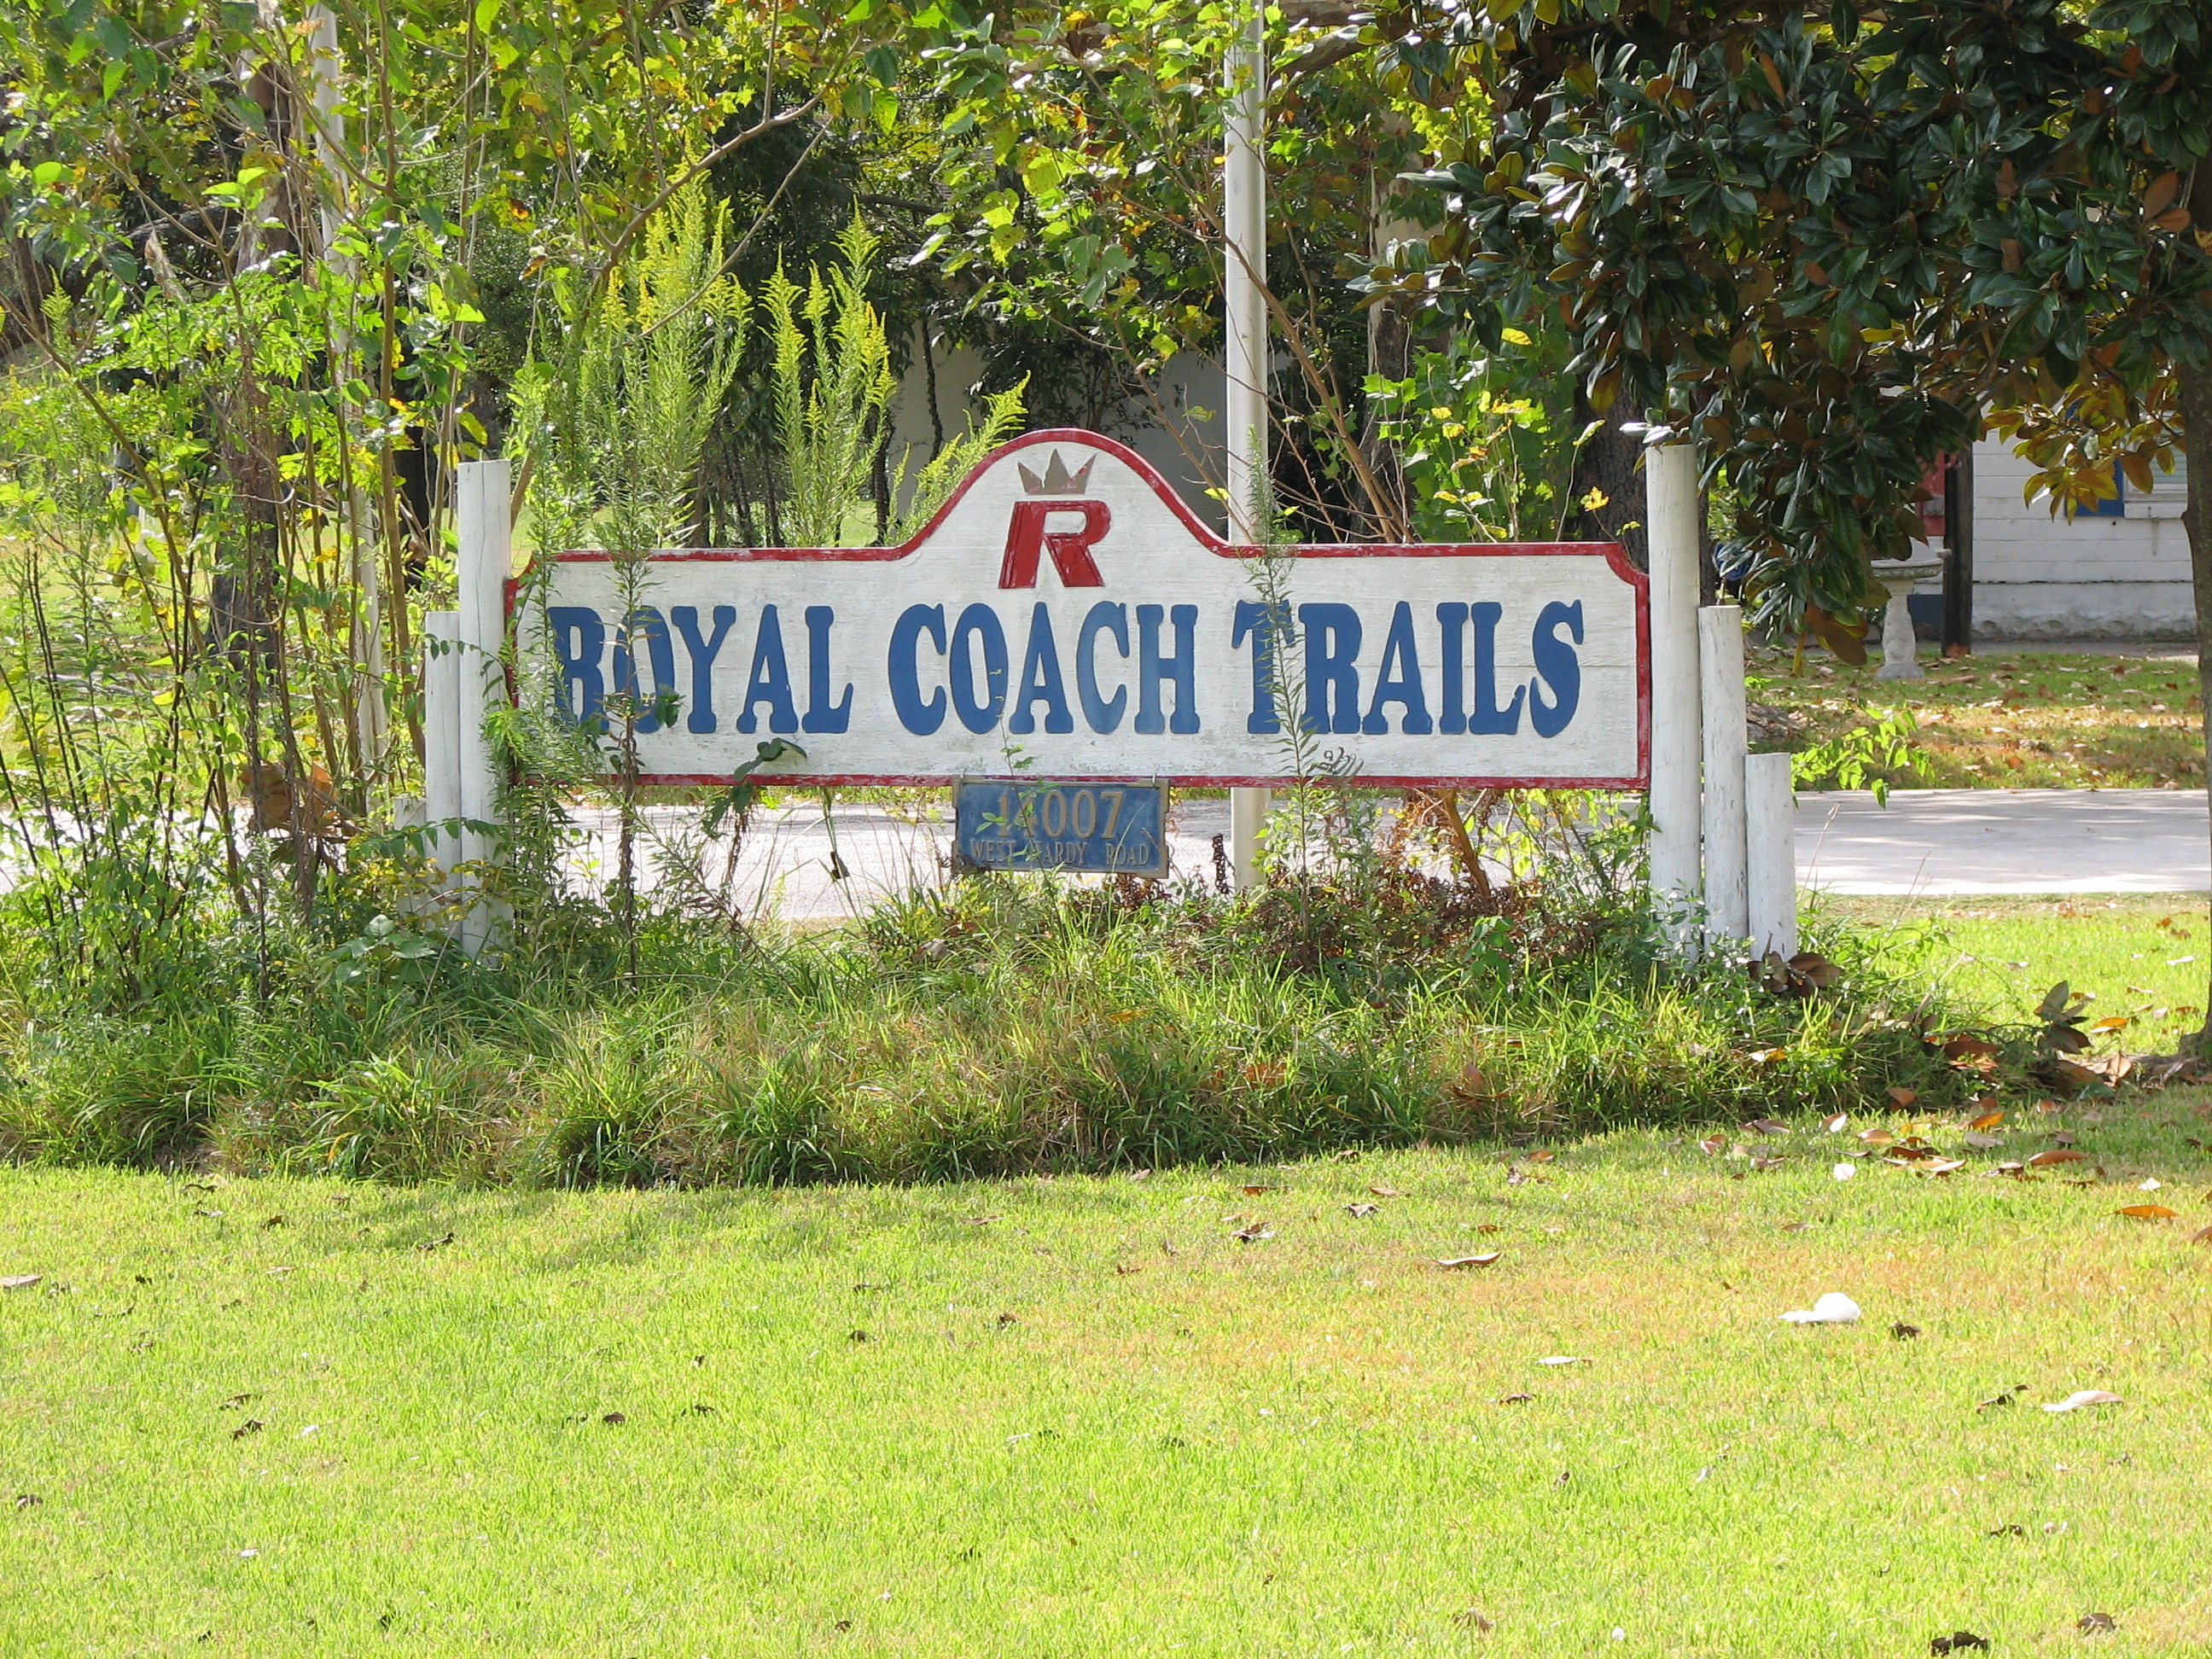 Name Royal Coach Mobile Home Park Ownership Trinity RCT LP LLC GP Nottinghills Interest Fractional Limited Partnership Share